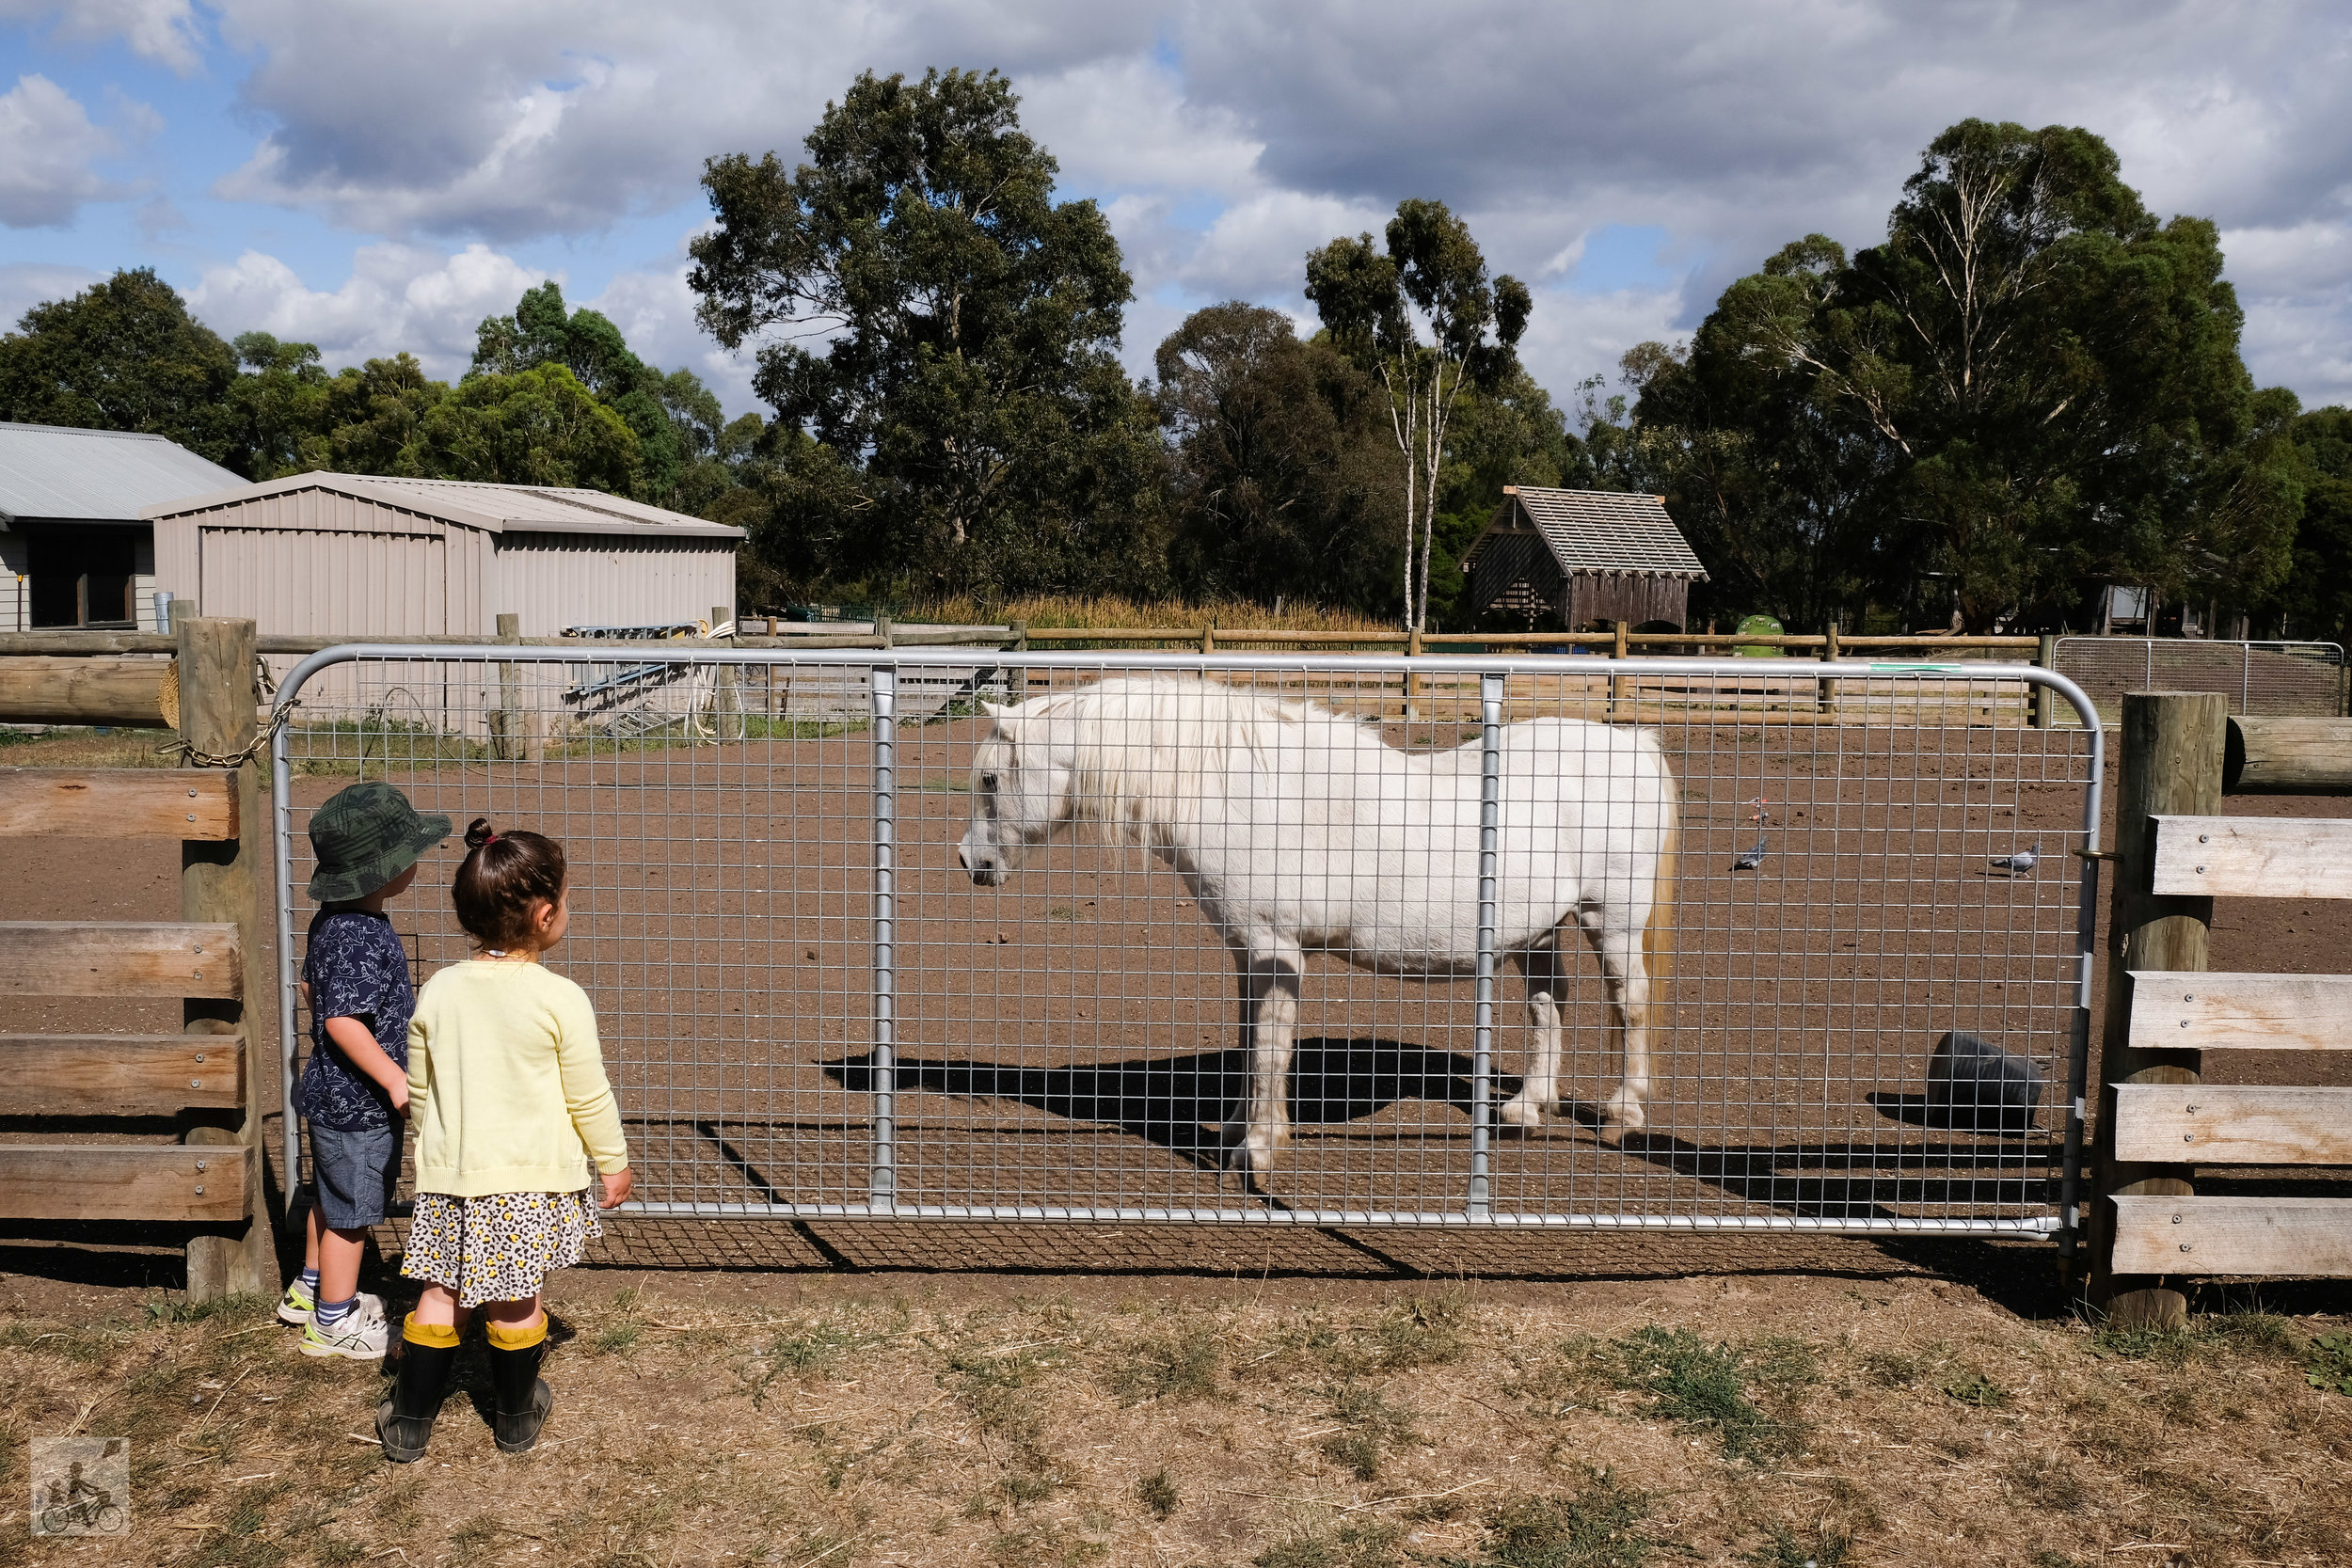 bundoora farm, bundoora - mamma knows north